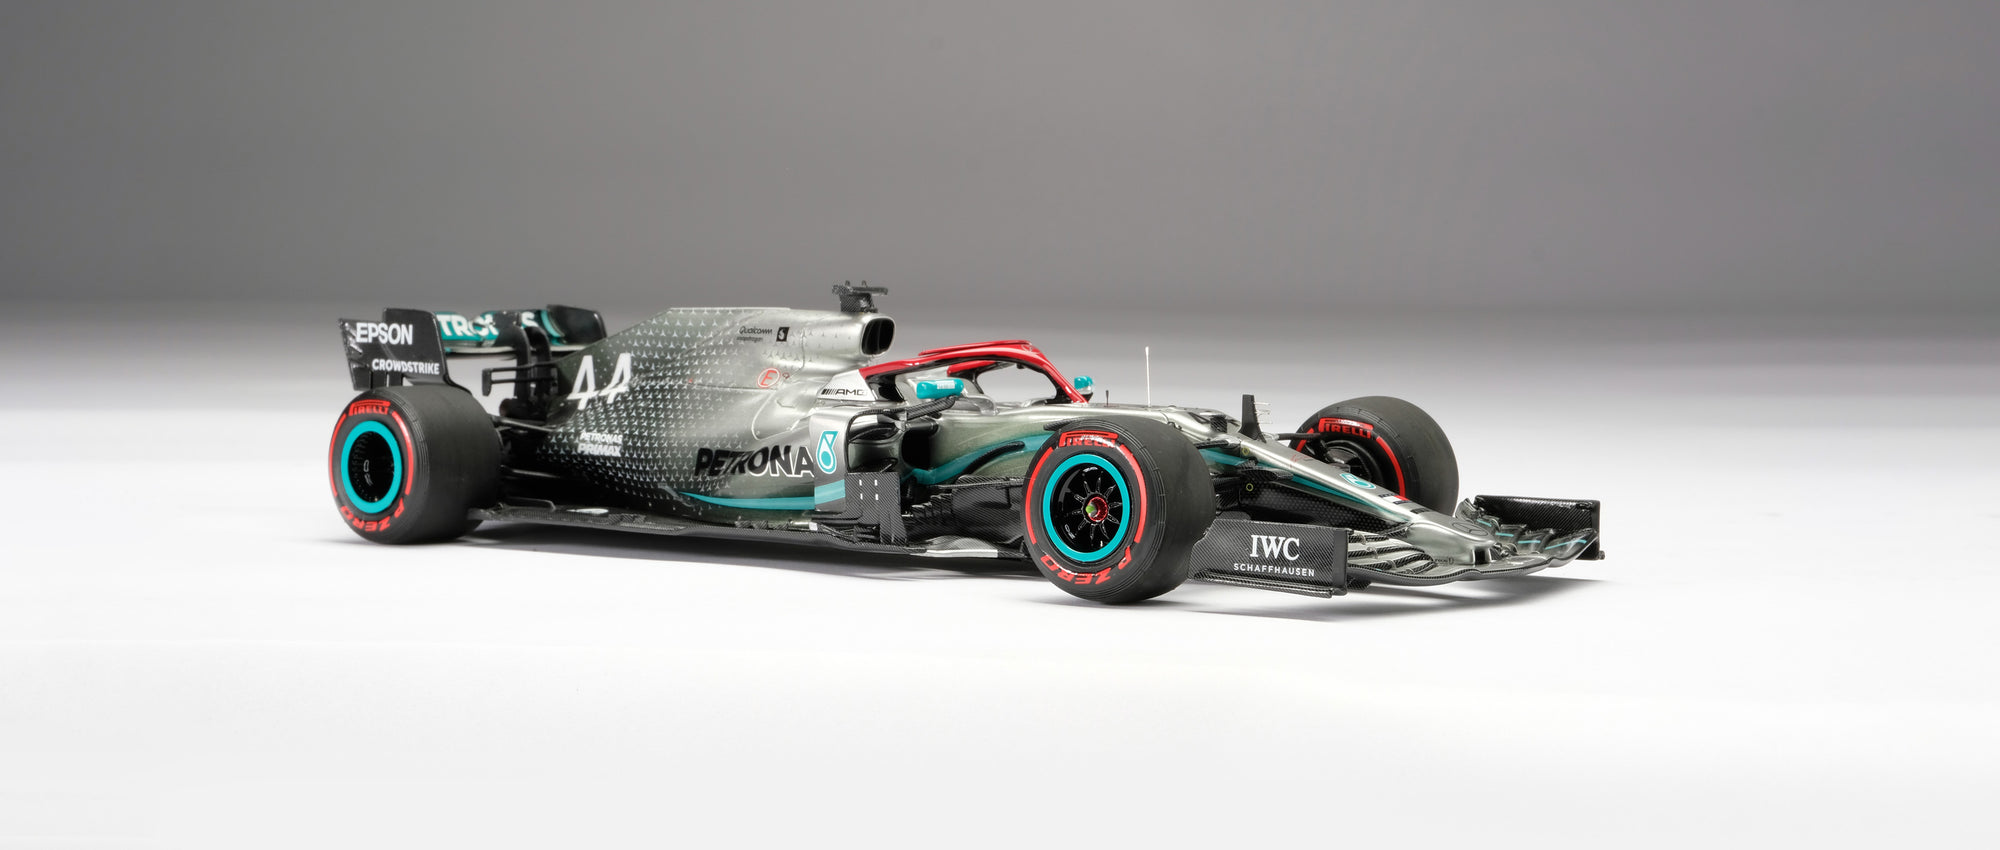 Mercedes-AMG F1 W10 EQ Power+ - Hamilton - 2019 Monaco GP Winner